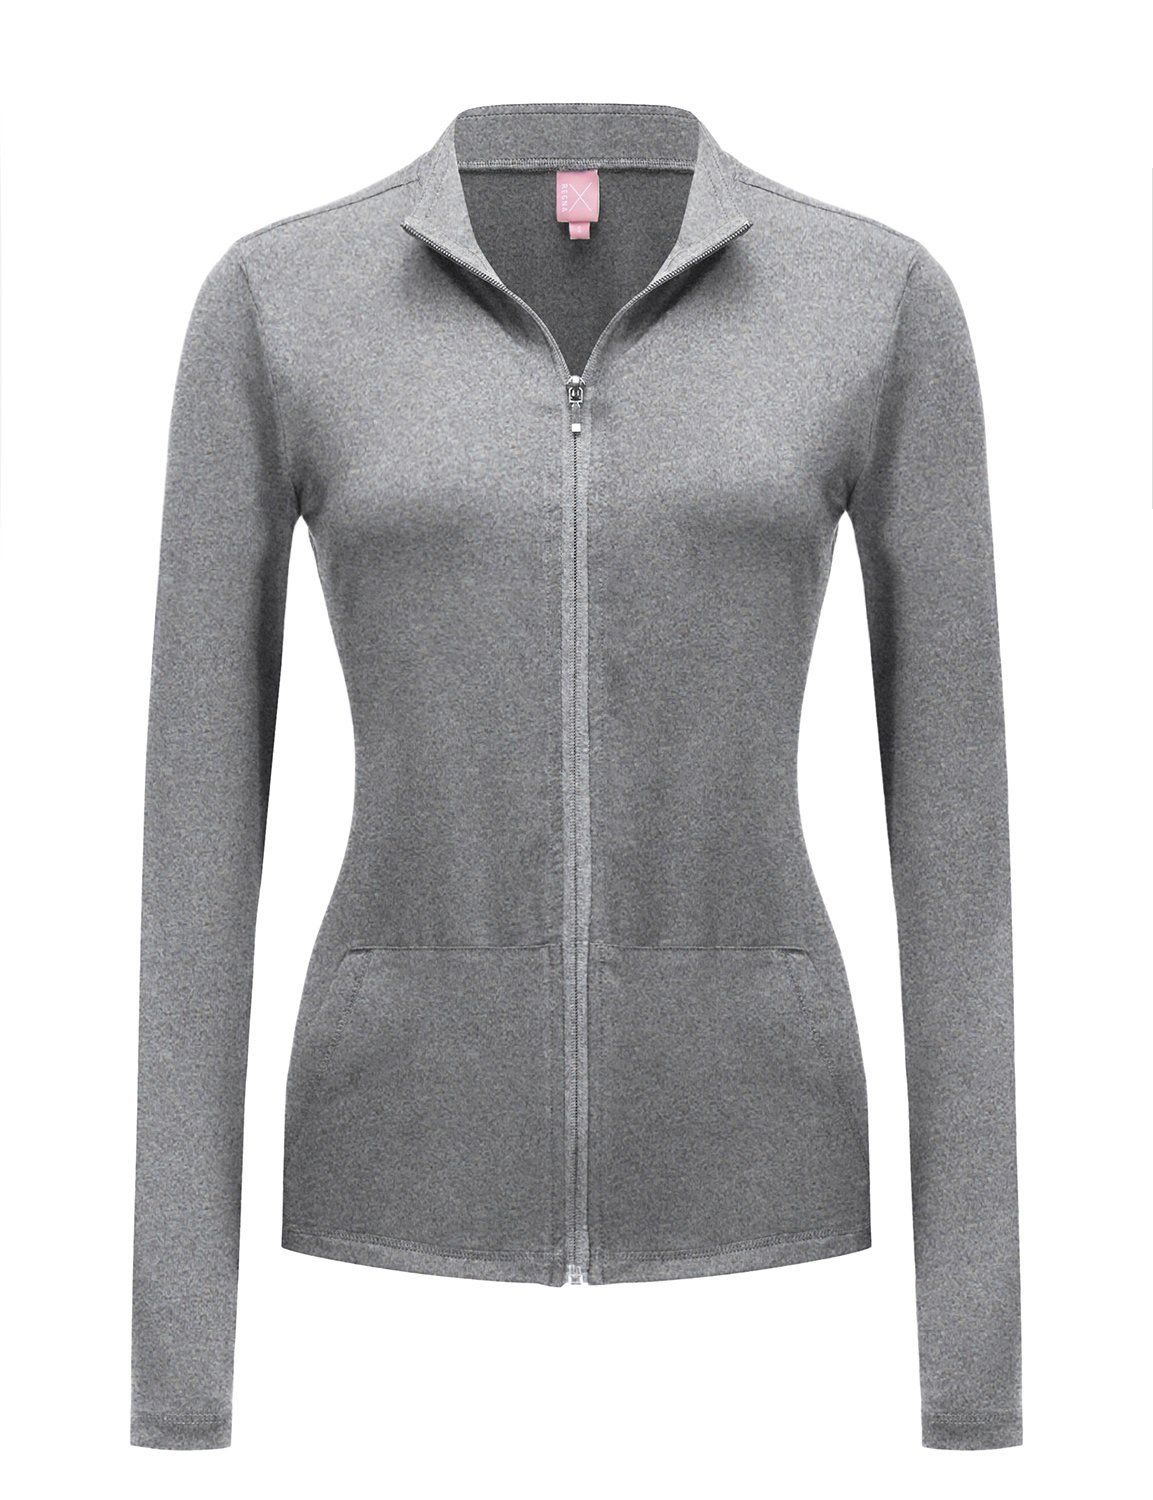 Regna X No Bother Women's Full Zip up Active Sports Jersey Strechy Track Jacket